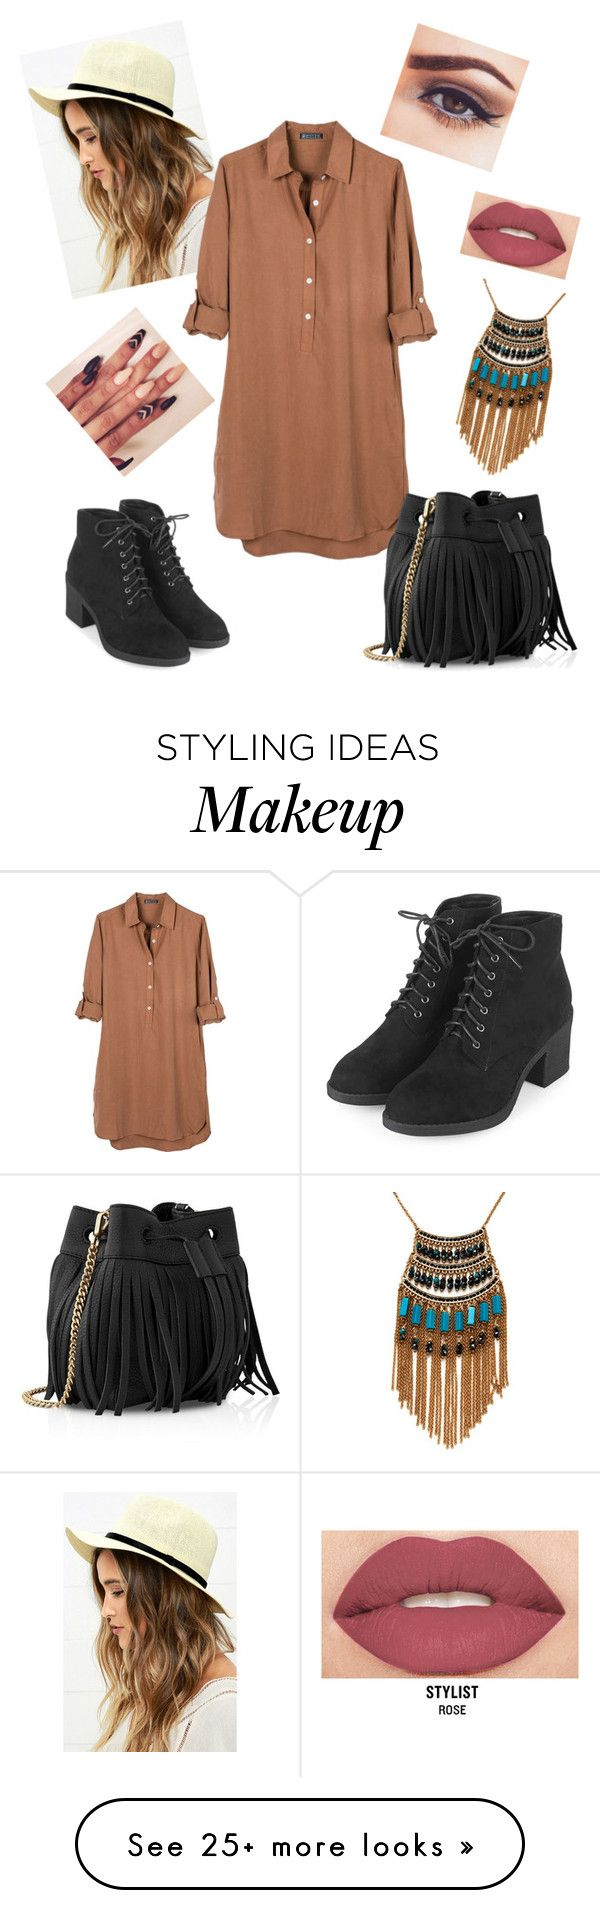 """""""Untitled #99"""" by mildabas on Polyvore featuring Lulu*s, United by Blue, Topshop, Whistles, Smashbox and Leslie Danzis"""